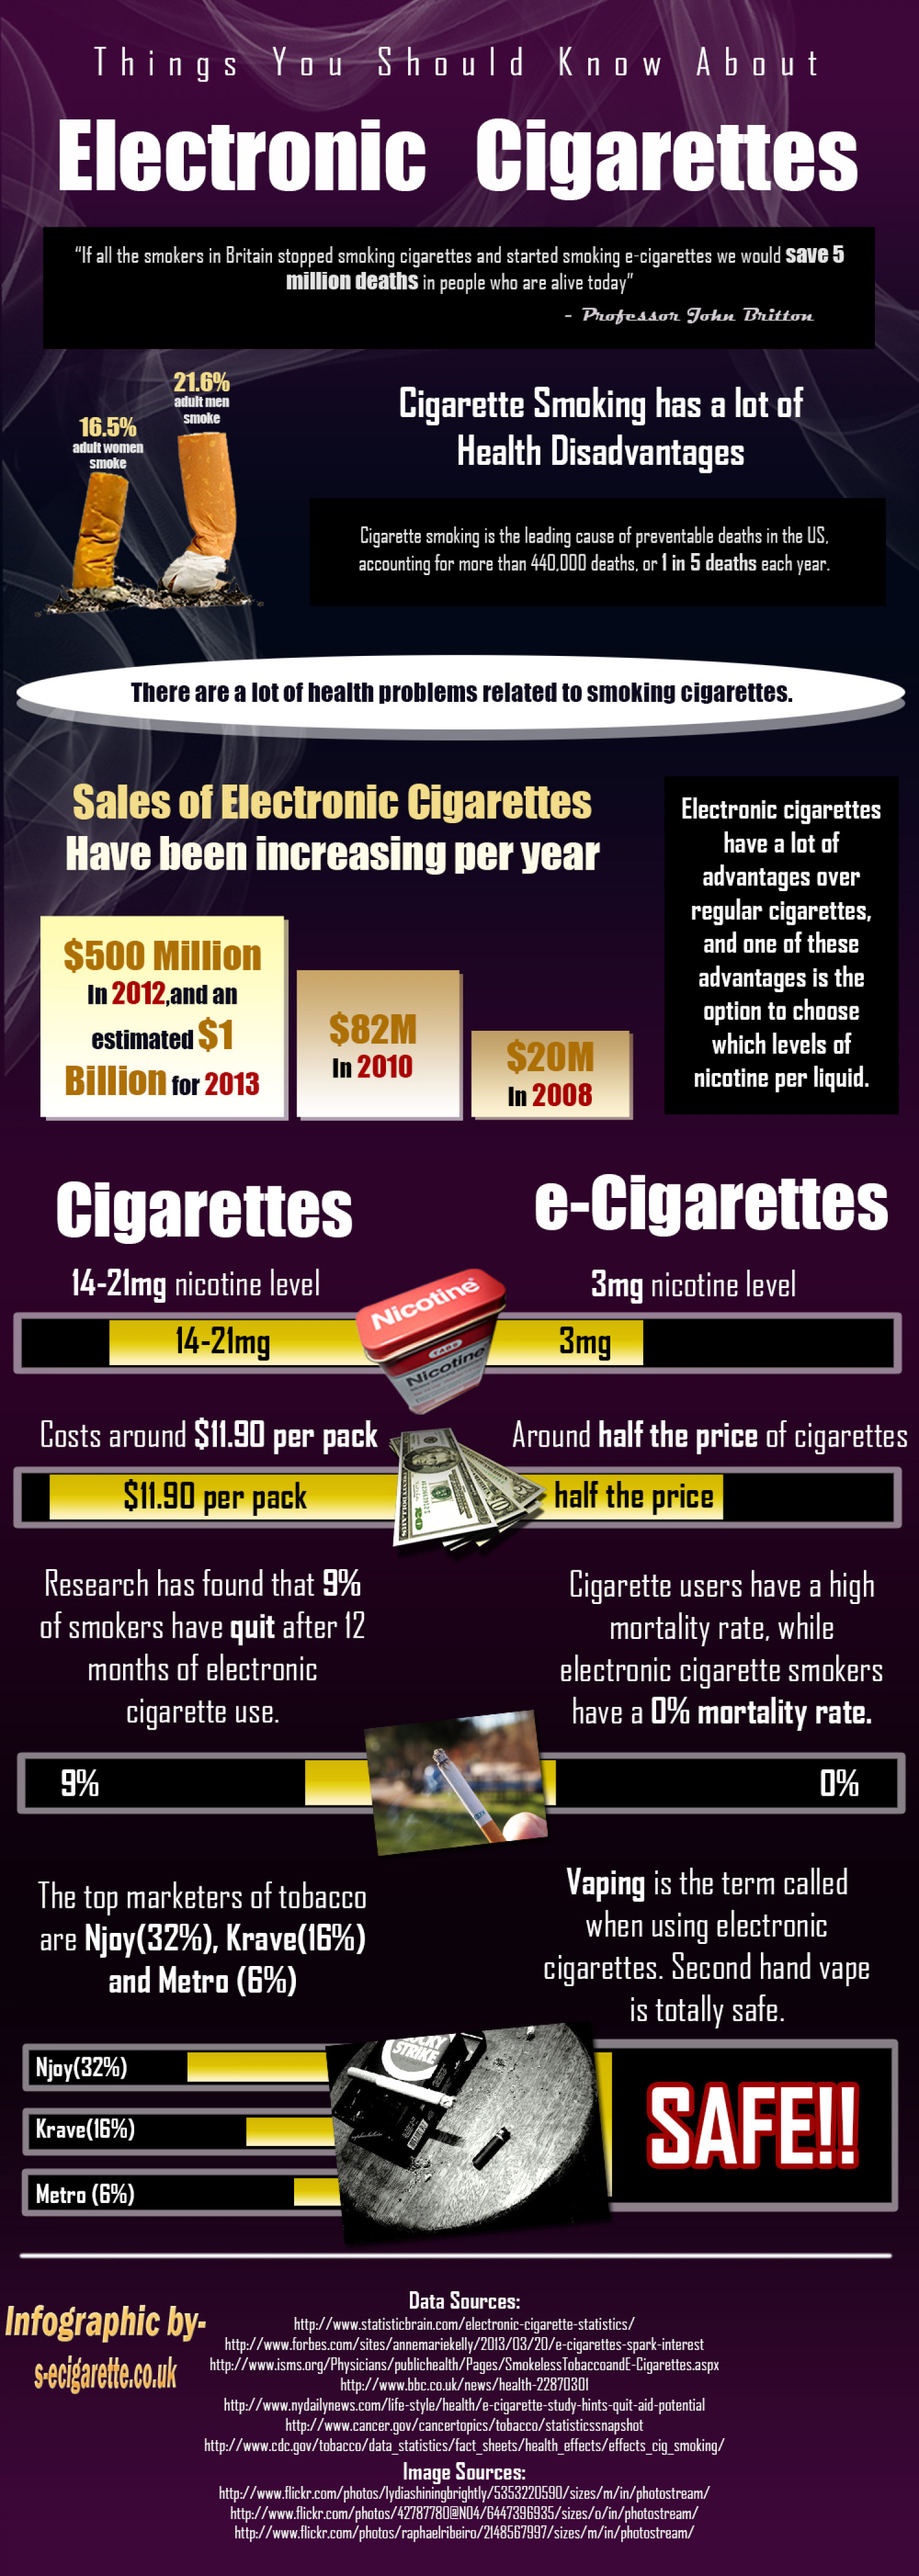 Things You Should Know About Electronic Cigarettes Infographic